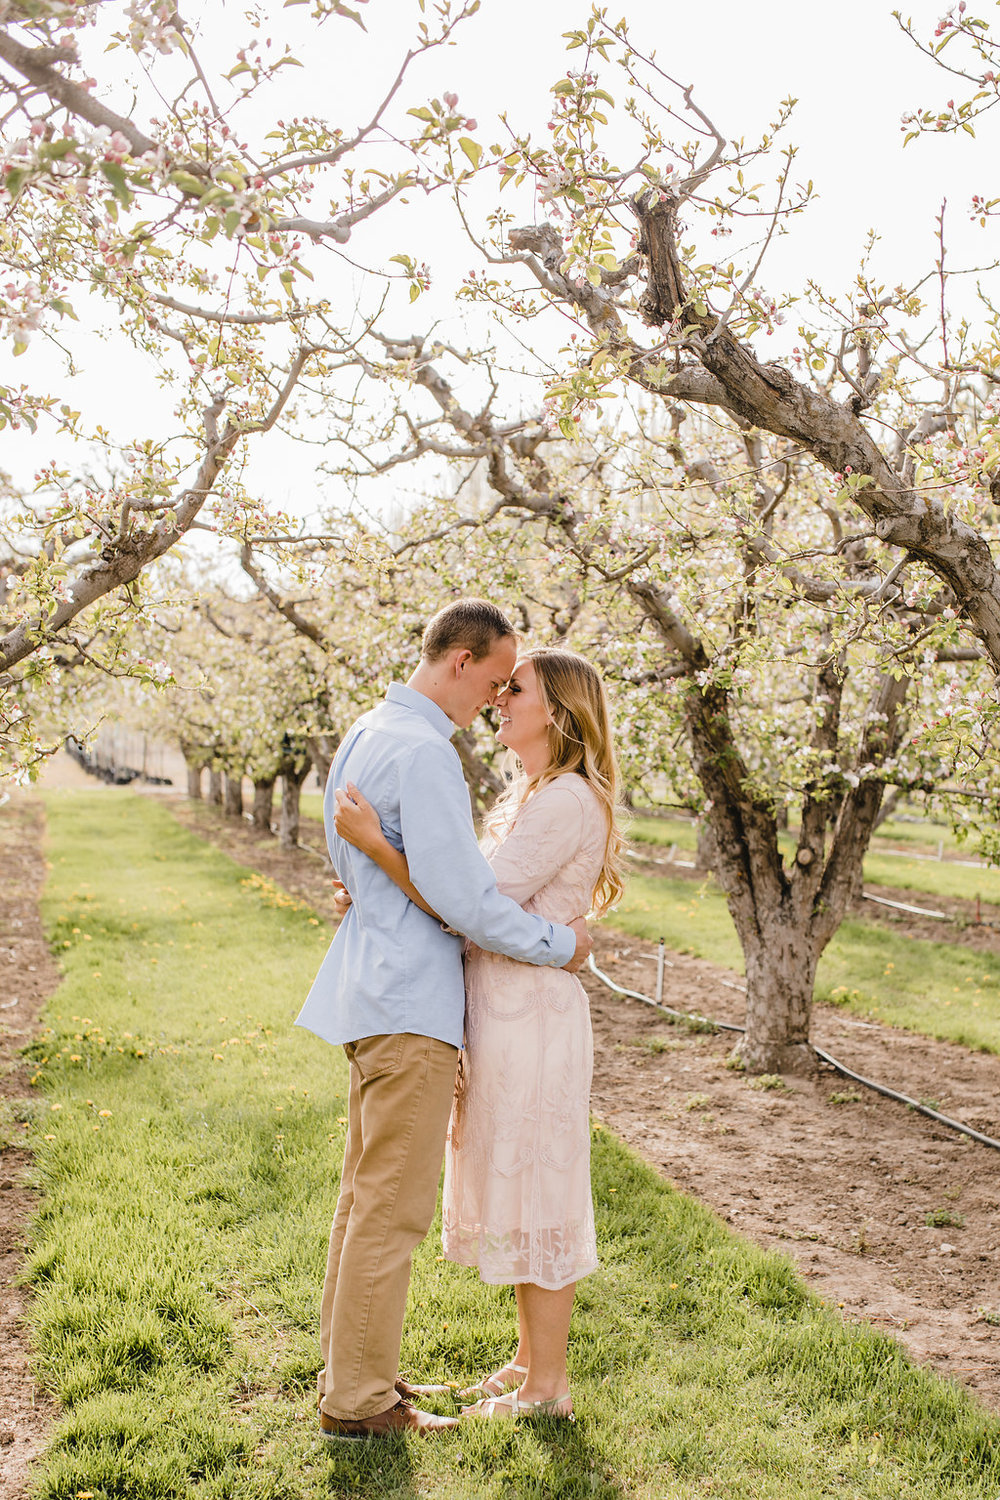 love birds orchard engagement photos professional photography logan utah calli richards